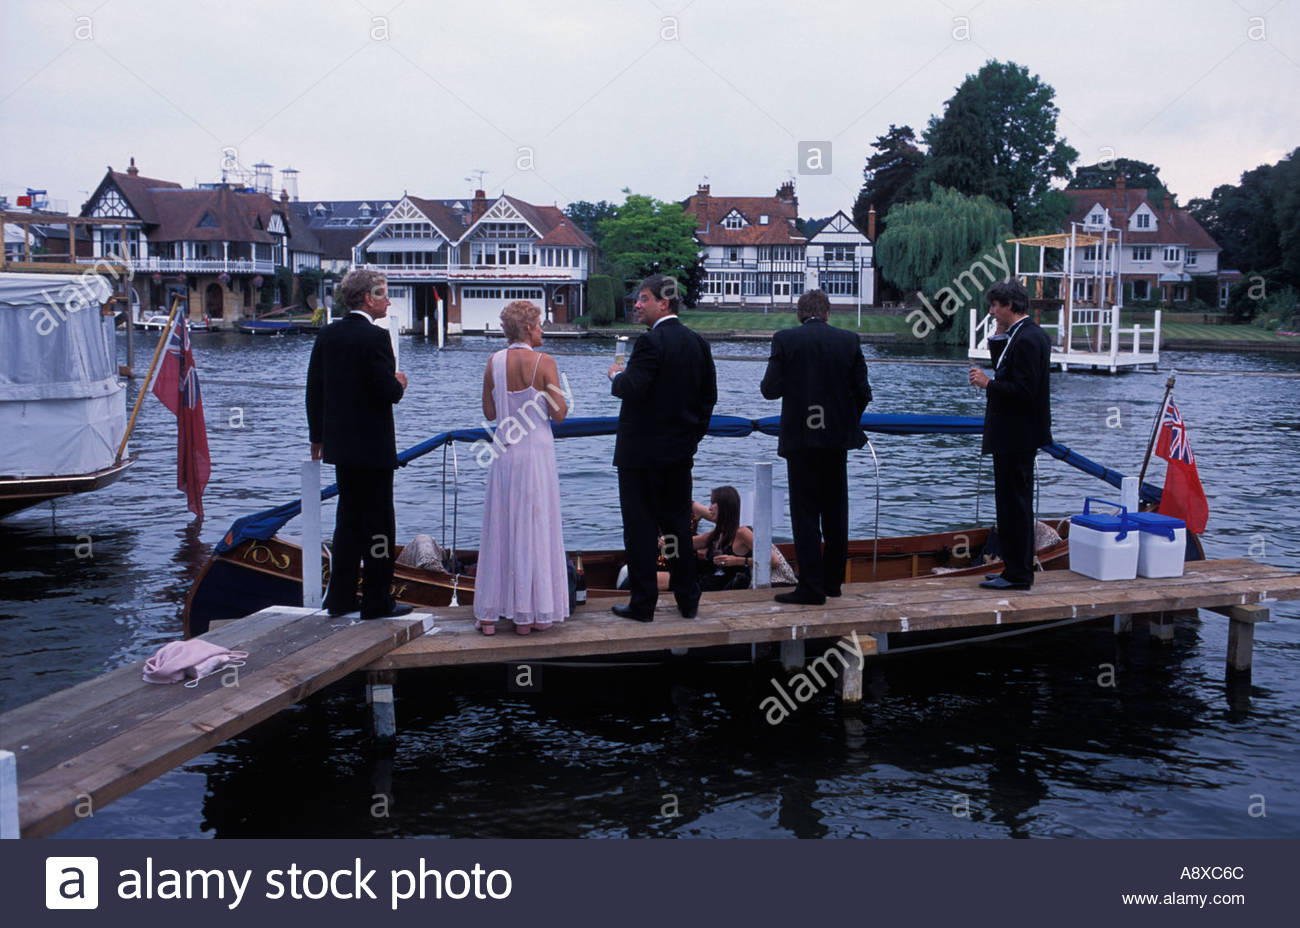 Guests at the Henley Music Festival, UK - Stock Image